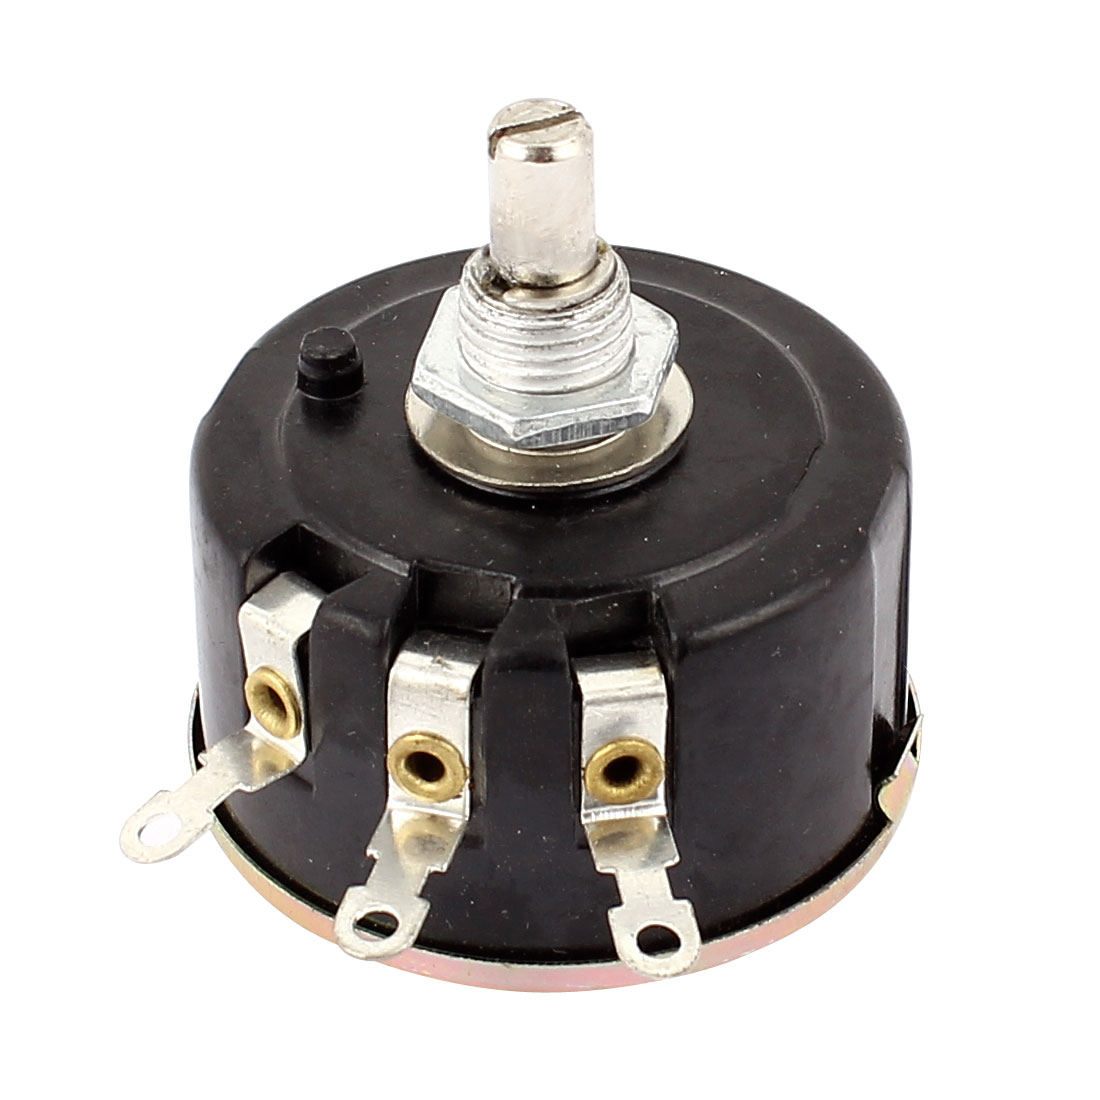 WX112(050) 10K ohm 5W 6mm Shaft 3 Terminal Wirewound Potentiometer